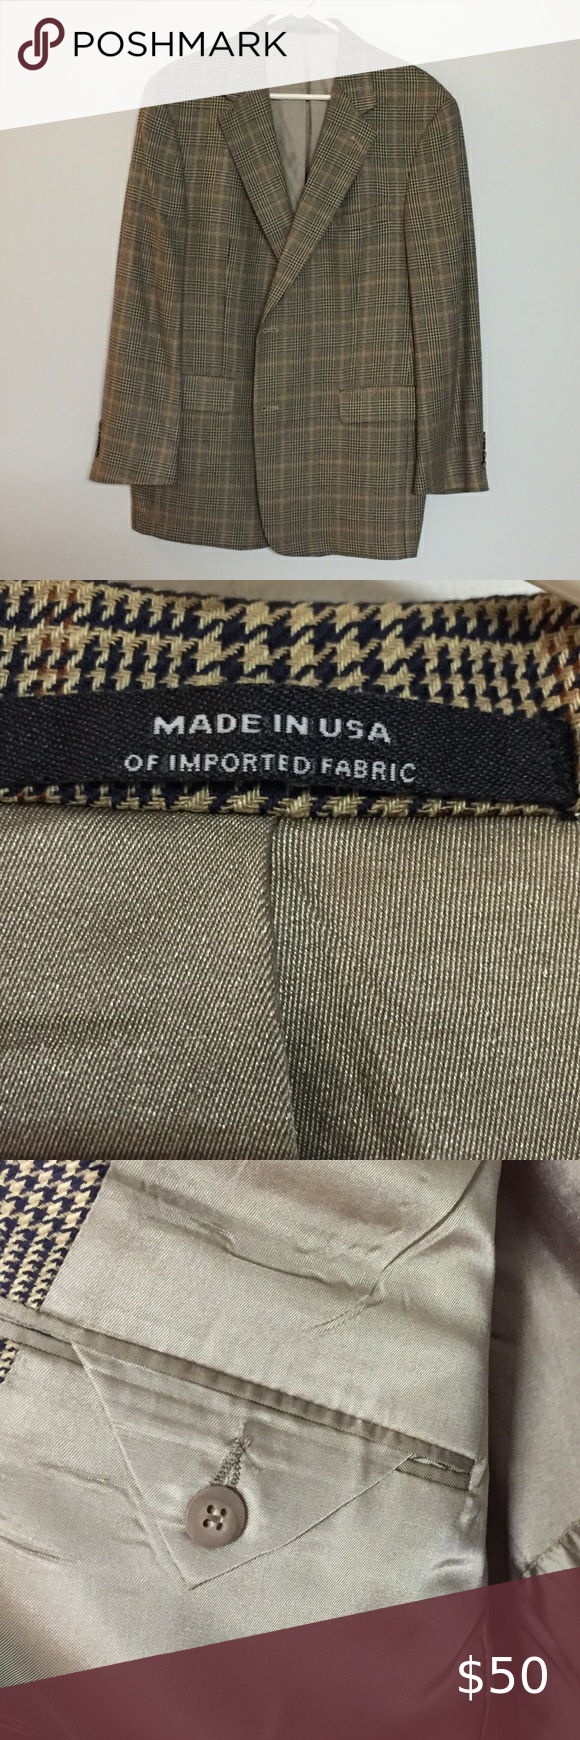 Austin Reed Union Made In Usa Austin Reed Clothes Design Austin